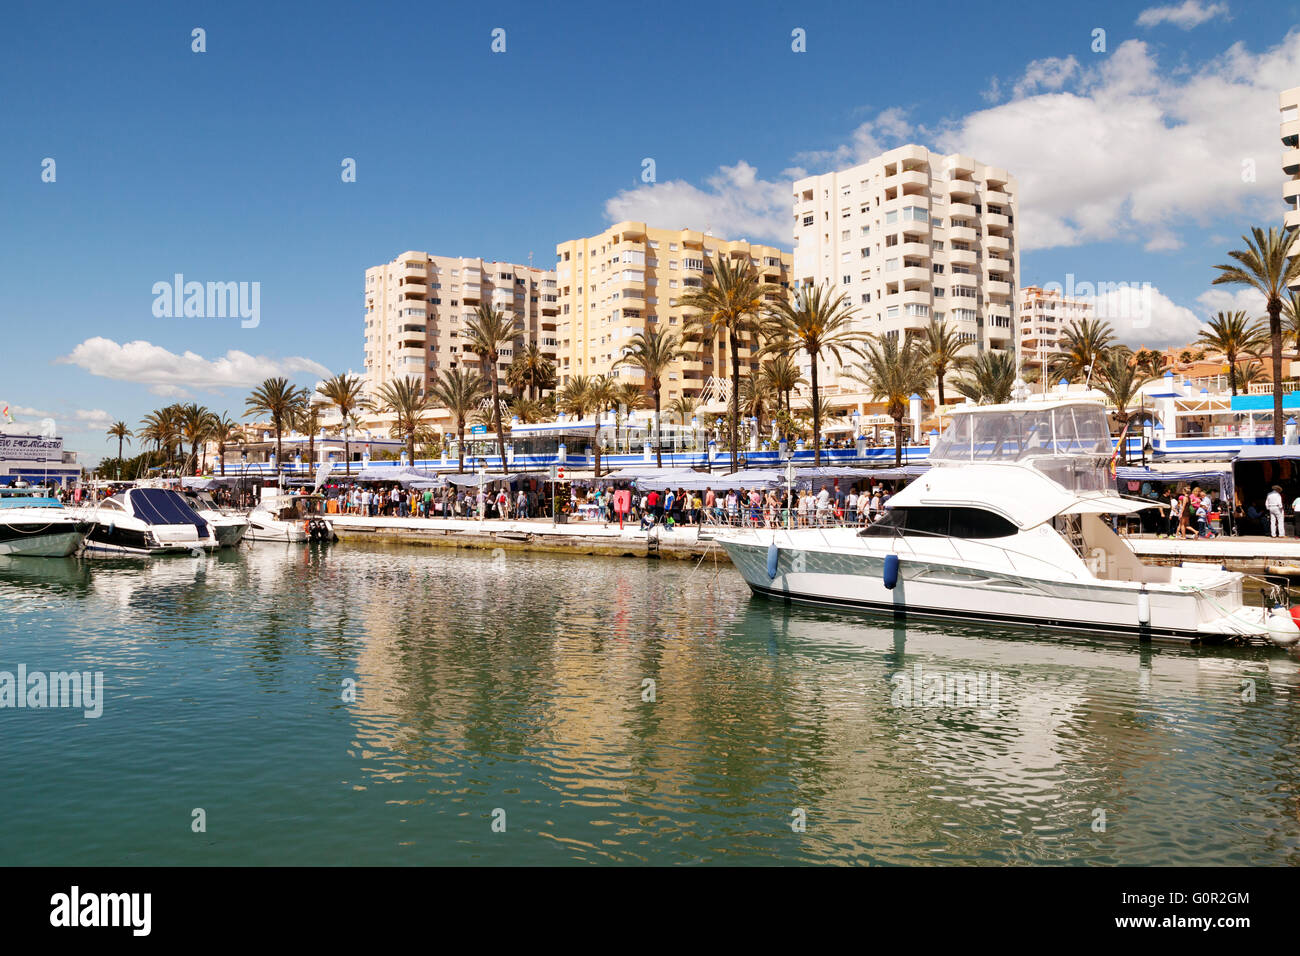 Boats moored in the marina on a sunny day, Estepona, Costa del Sol, Andalusia, Spain Europe Stock Photo